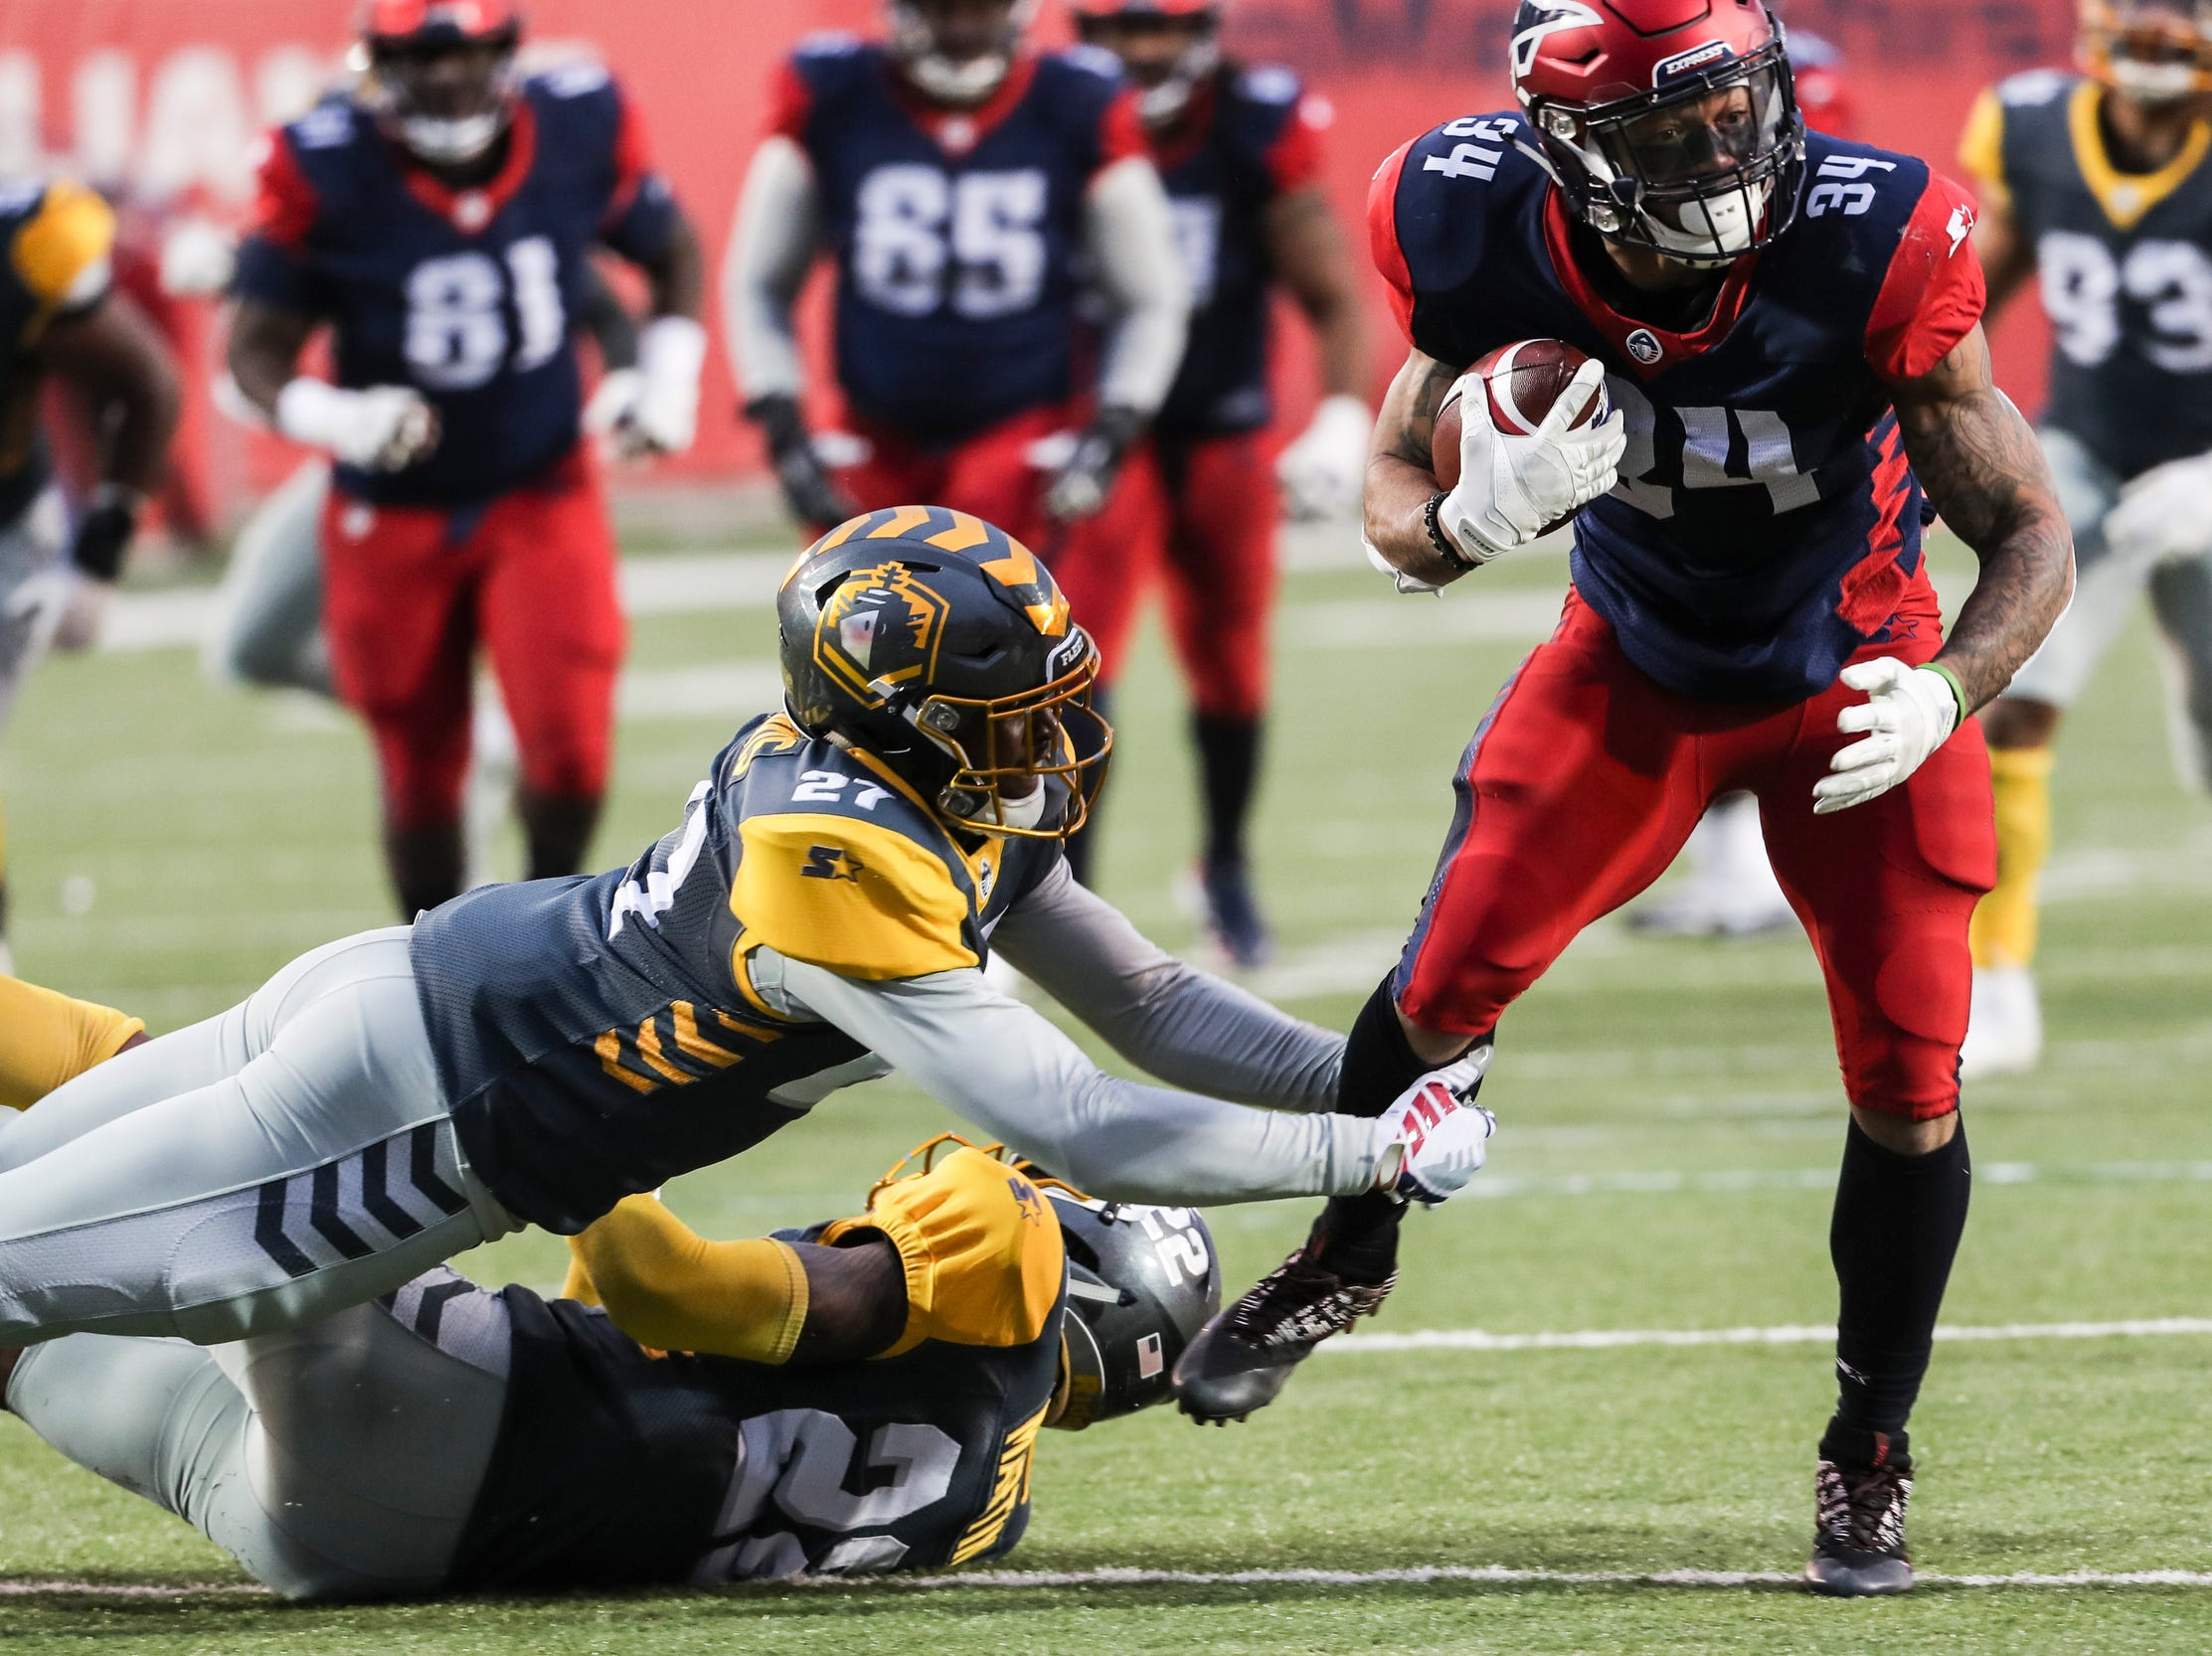 March 02, 2019 - Memphis Express' Sherman Badie runs with the ball during Saturday's game against the San Diego Fleet.